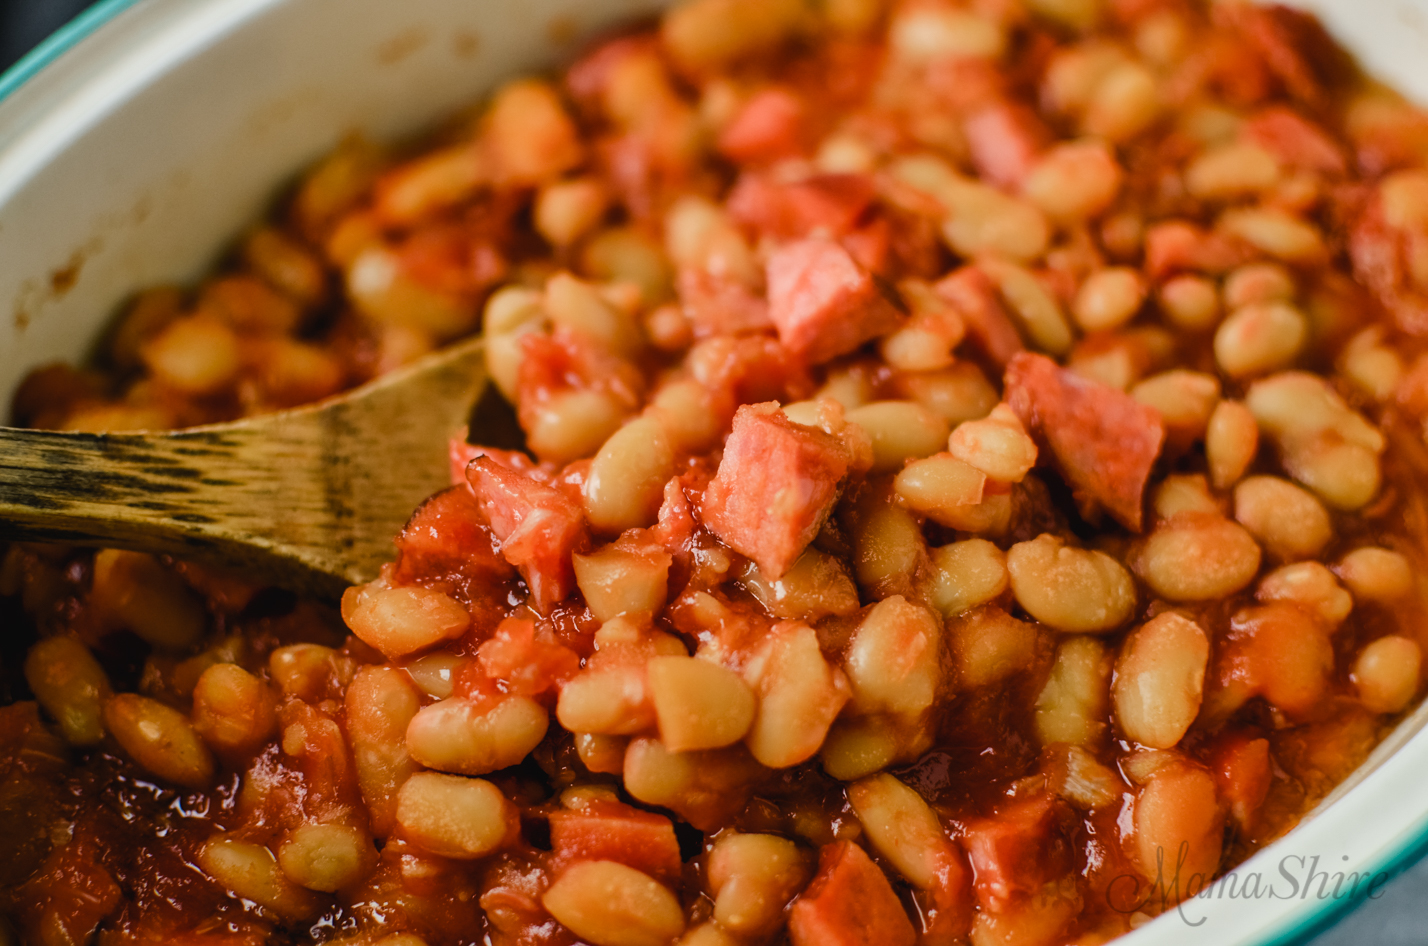 Baked beans made with brown sugar and smoked sausage.